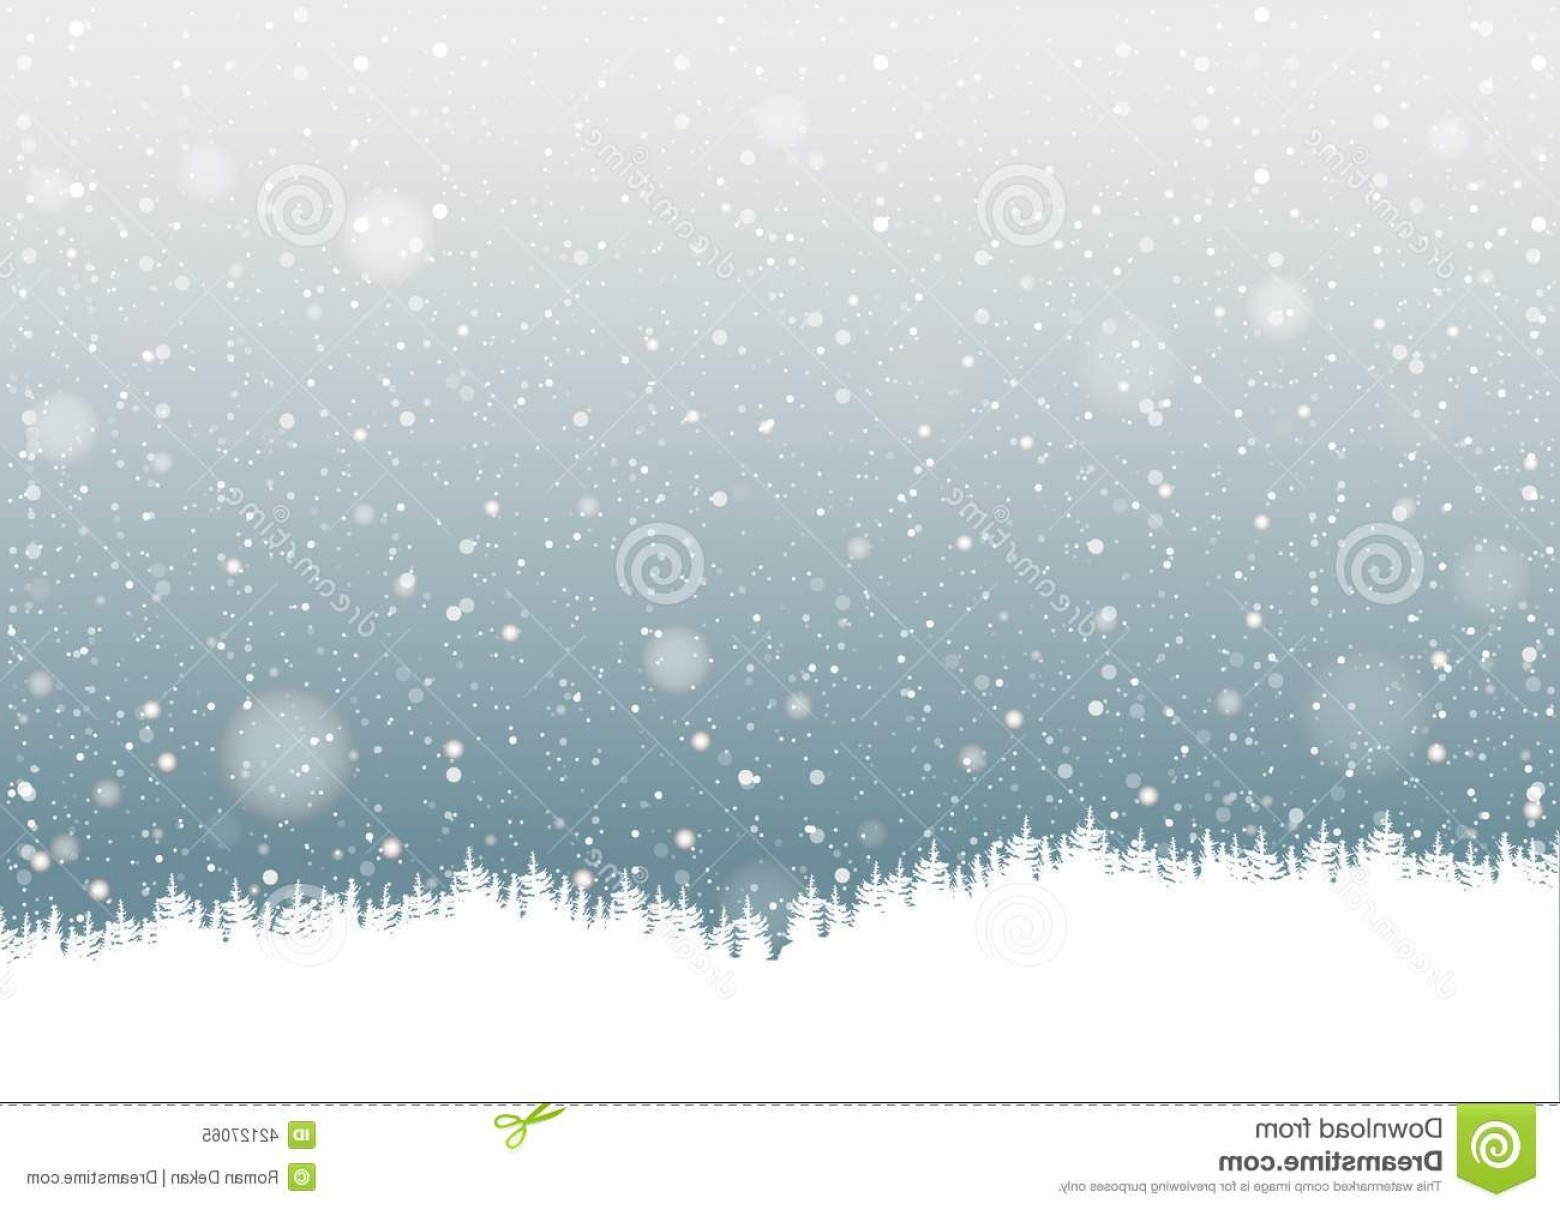 Snow Falling Vector Free: Stock Illustration Falling Snow Forest Silhouette Background Illustration Vector Image